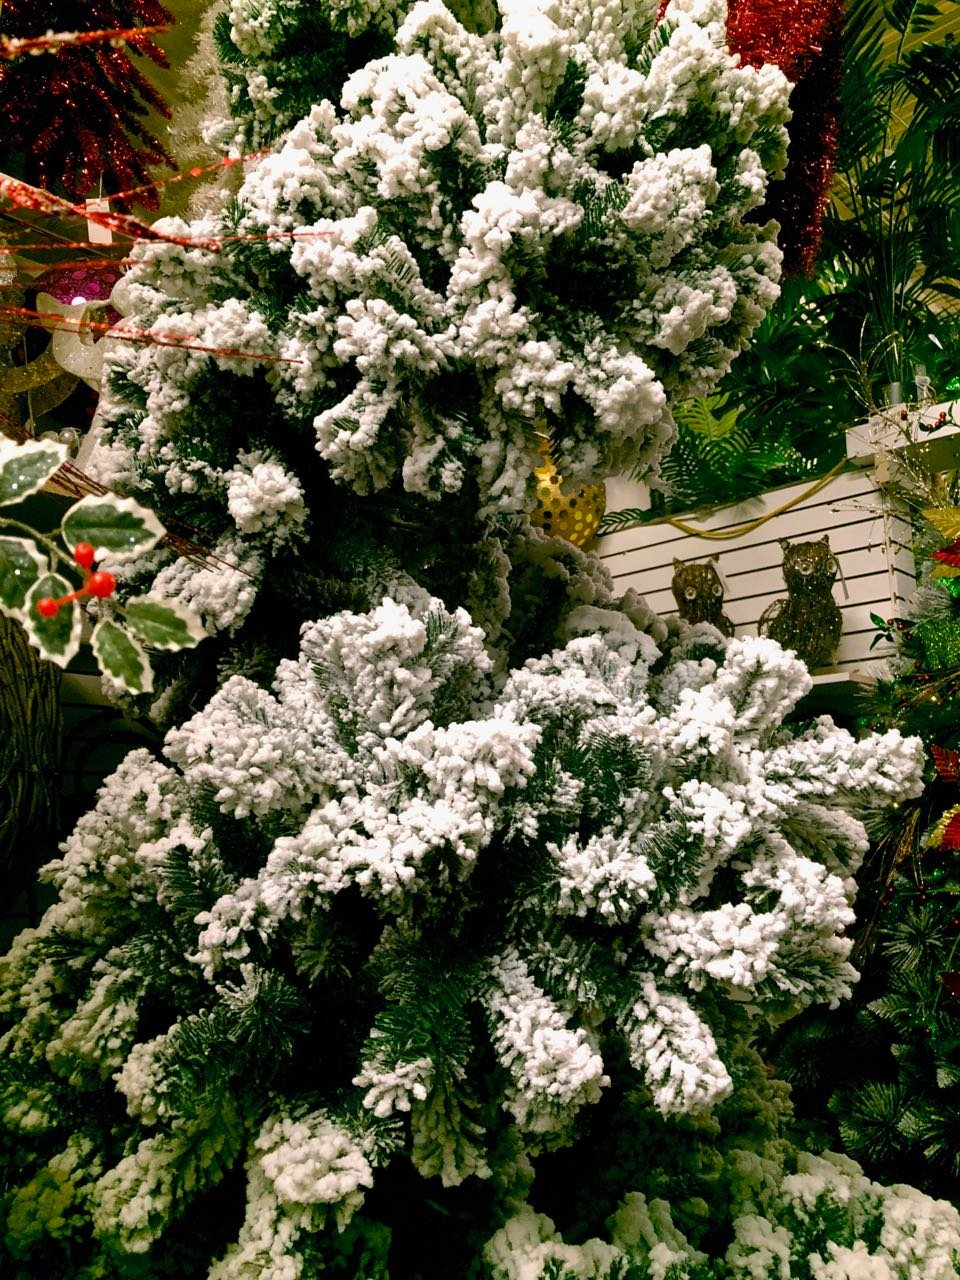 AMERIQUE Premium Magnificent Hinged Artificial Snowy Pine Christmas Tree With Metal Stand, Flocked Snow, Unlit